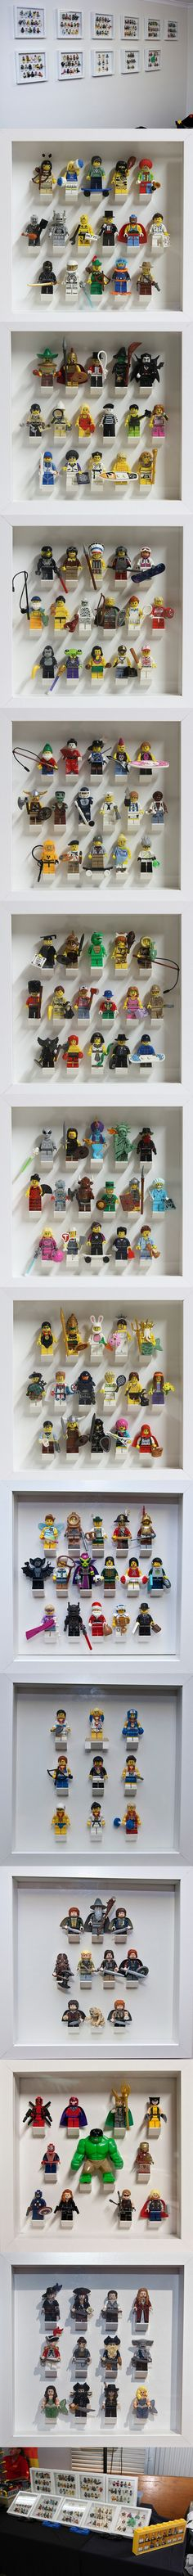 Collectible Minifigures in IKEA Ribba Frames #LEGO